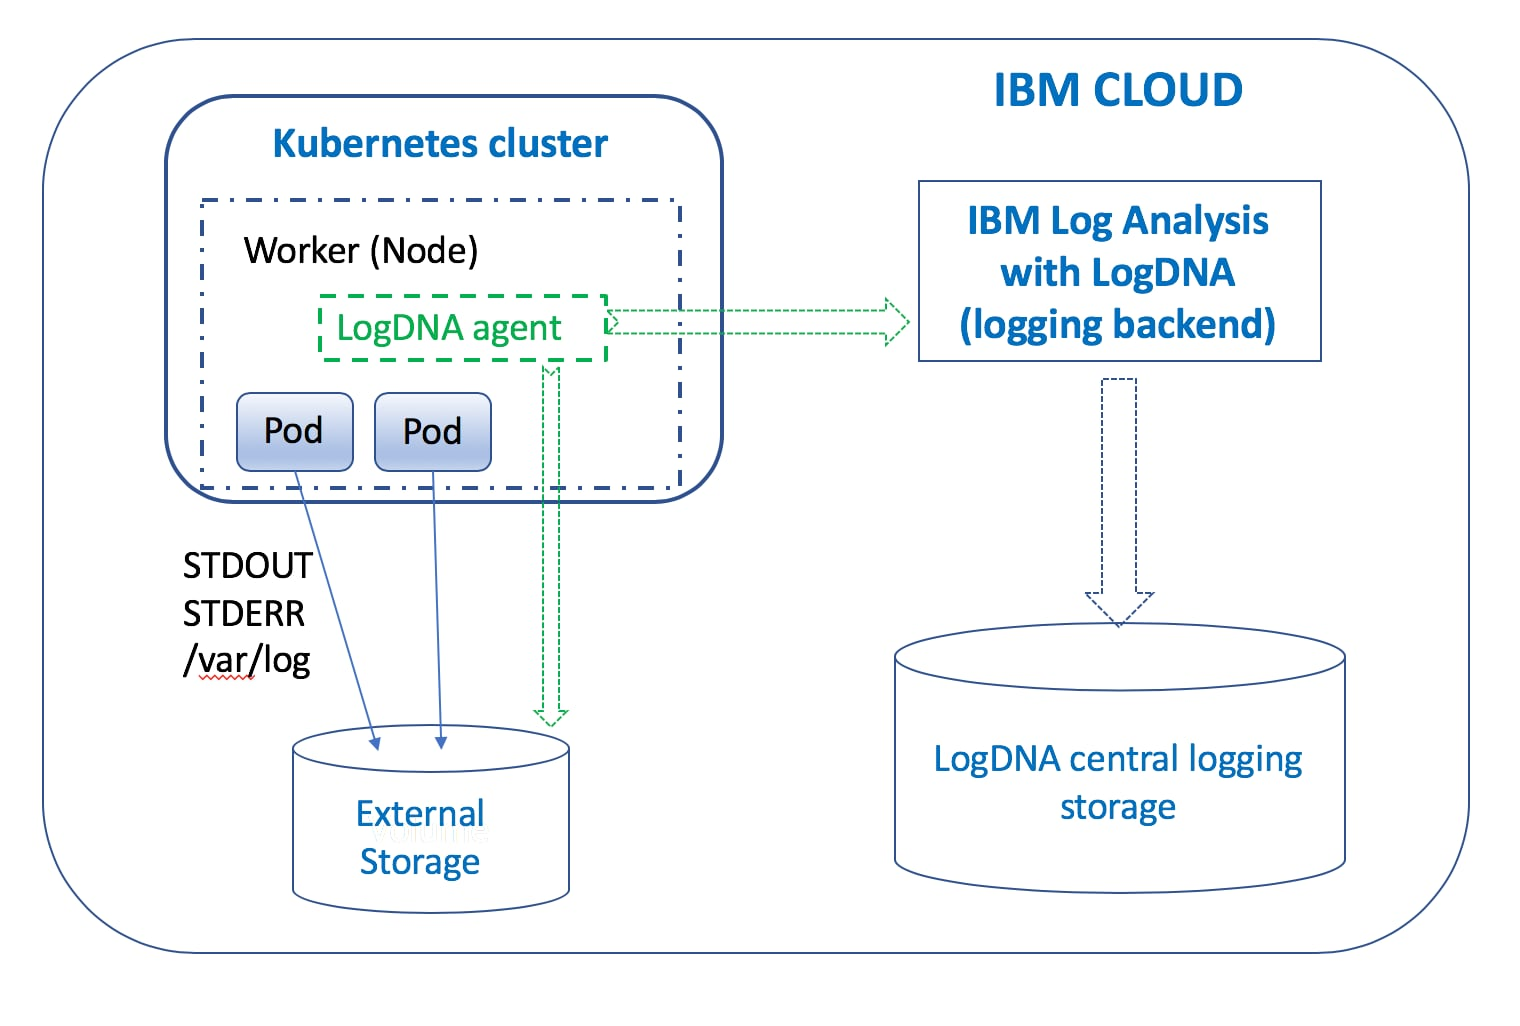 Configuring cluster-level logging on the IBM Cloud for Kubernetes clusters